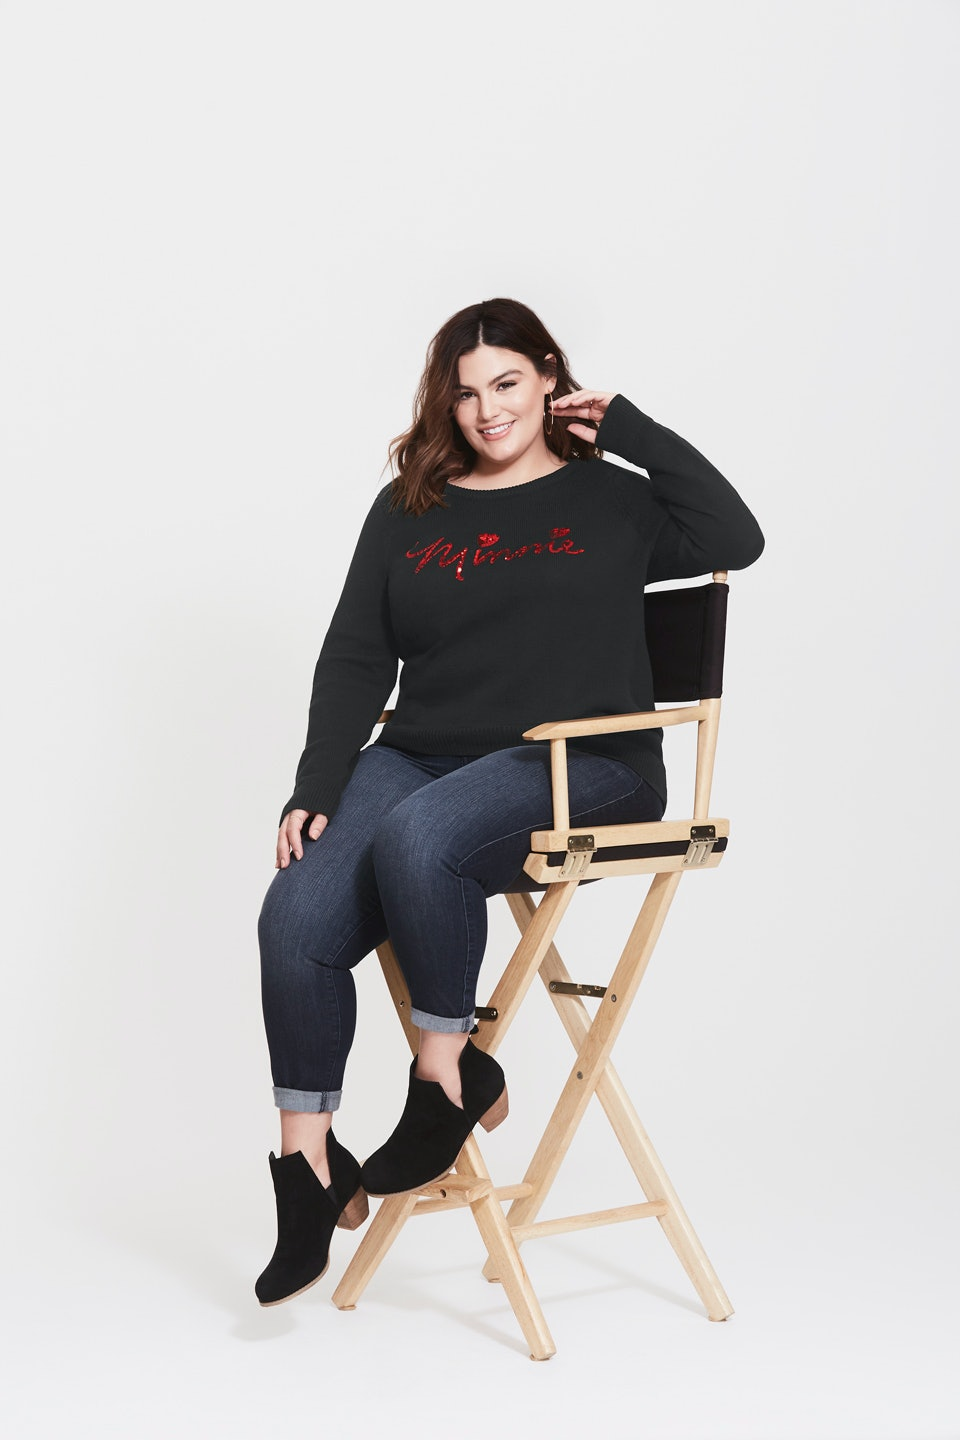 c20acff833860 Torrid's Rock The Dots Collection Celebrates Minnie Mouse's Hollywood Walk  Of Fame Milestone